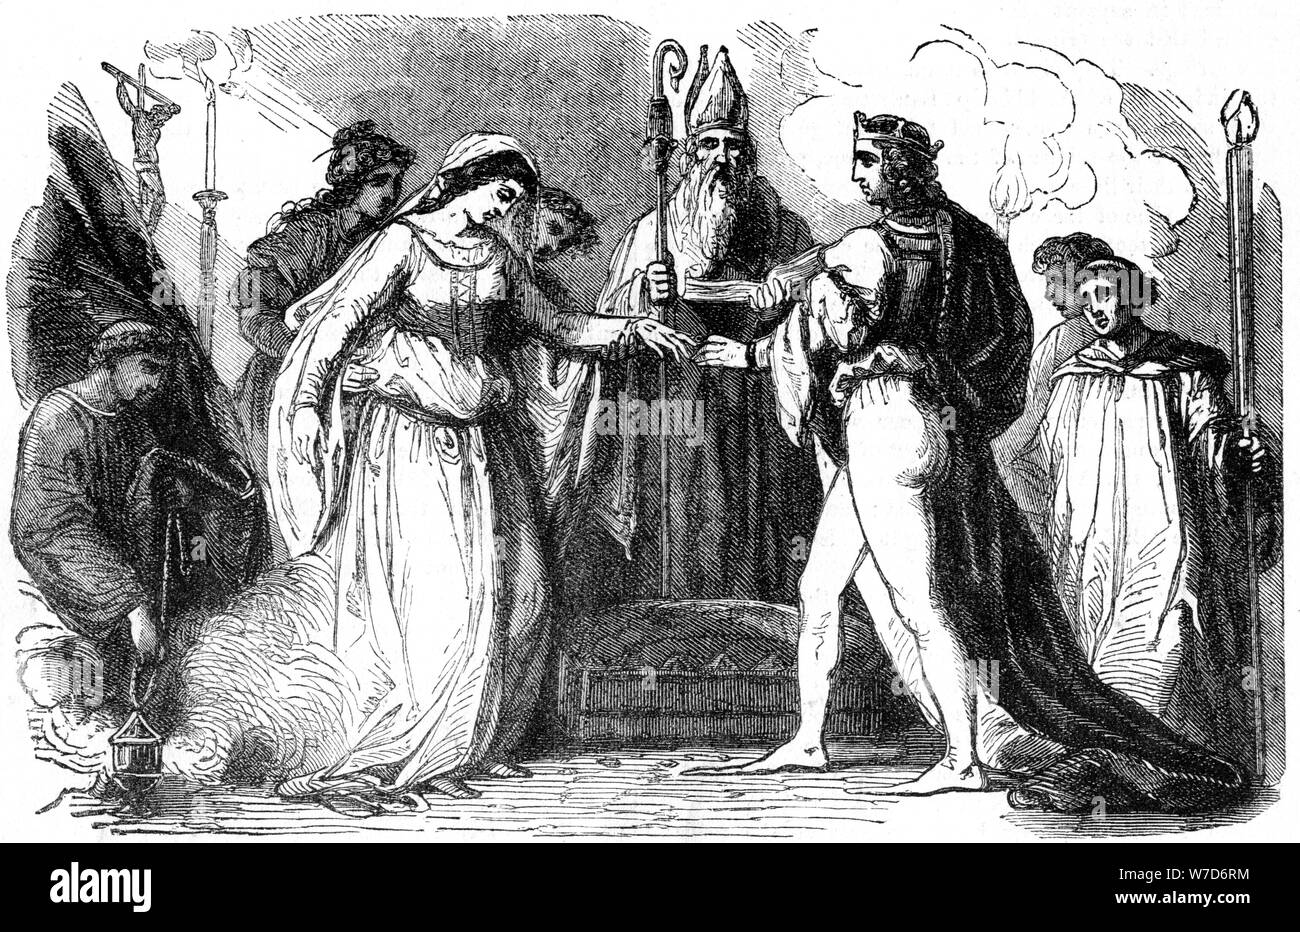 Marriage of Henry I of England and Matilda, 1100. Artist: Unknown Stock Photo